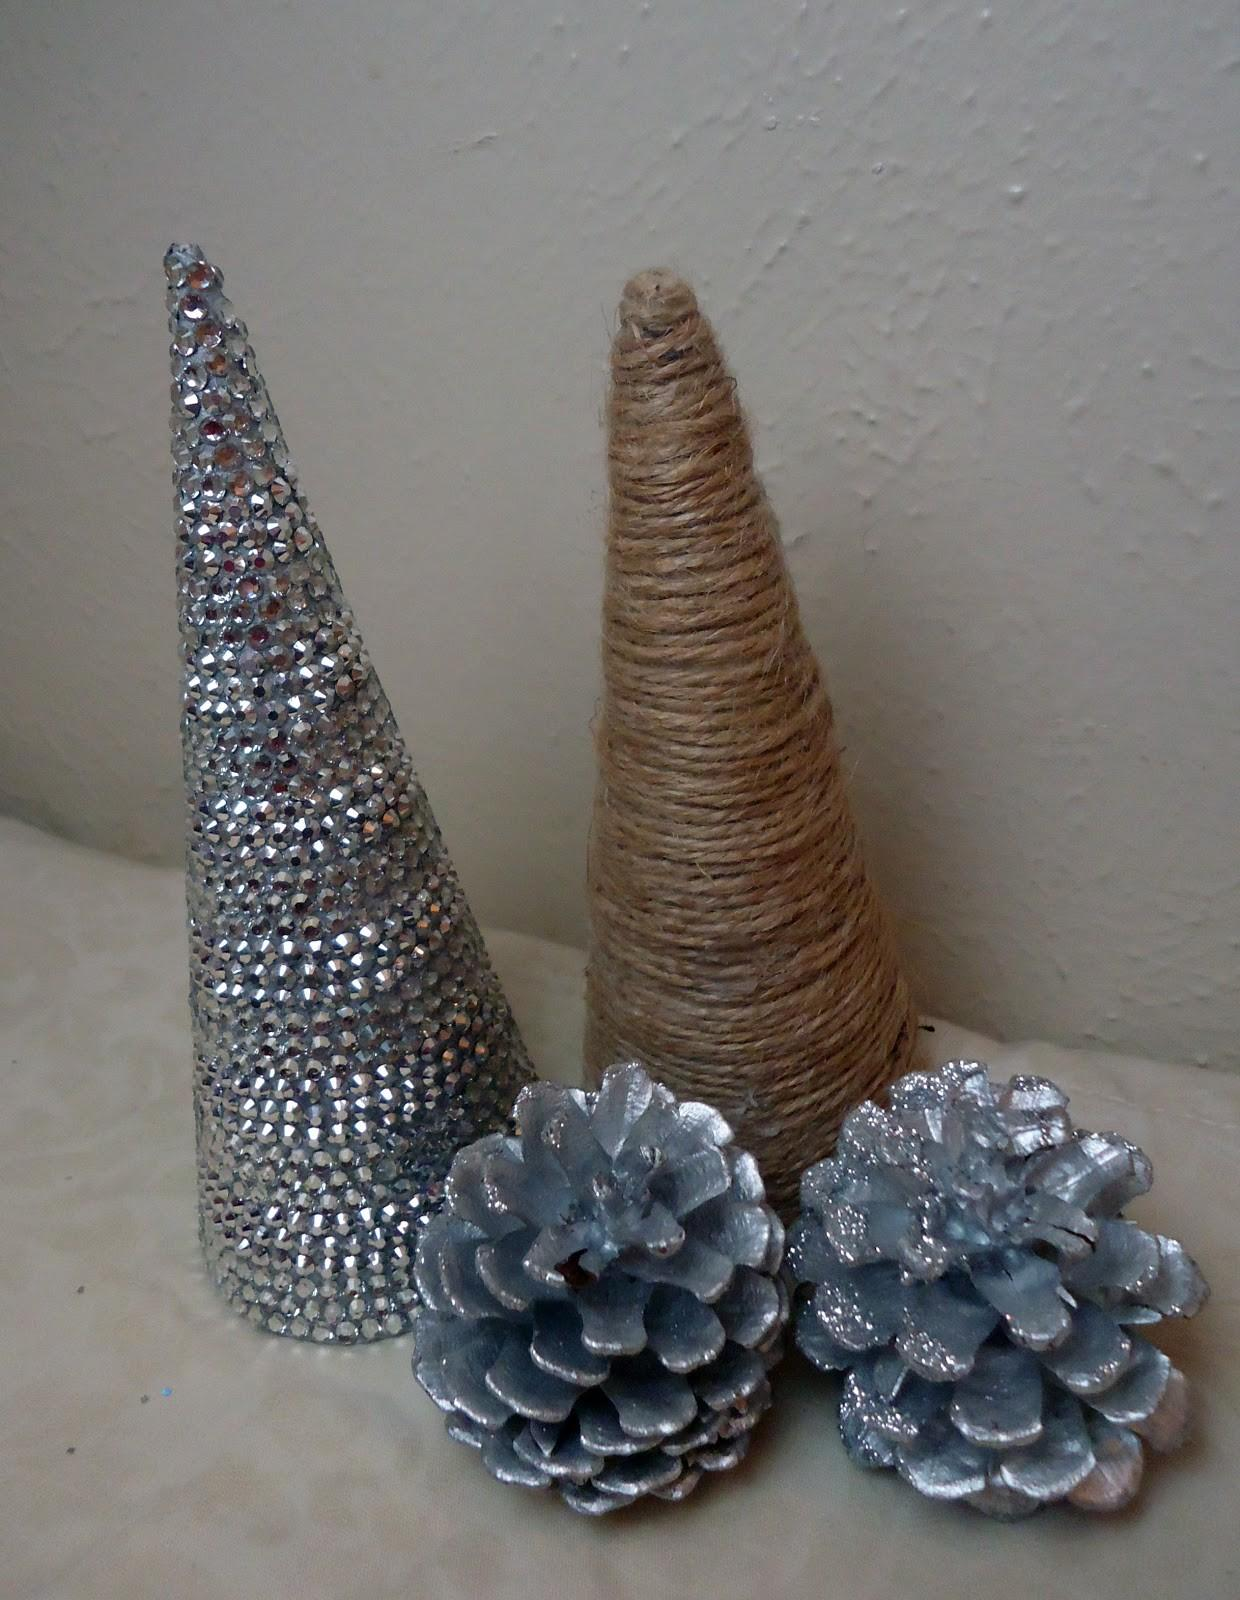 Frugal Home Design Diy Cone Shaped Christmas Trees